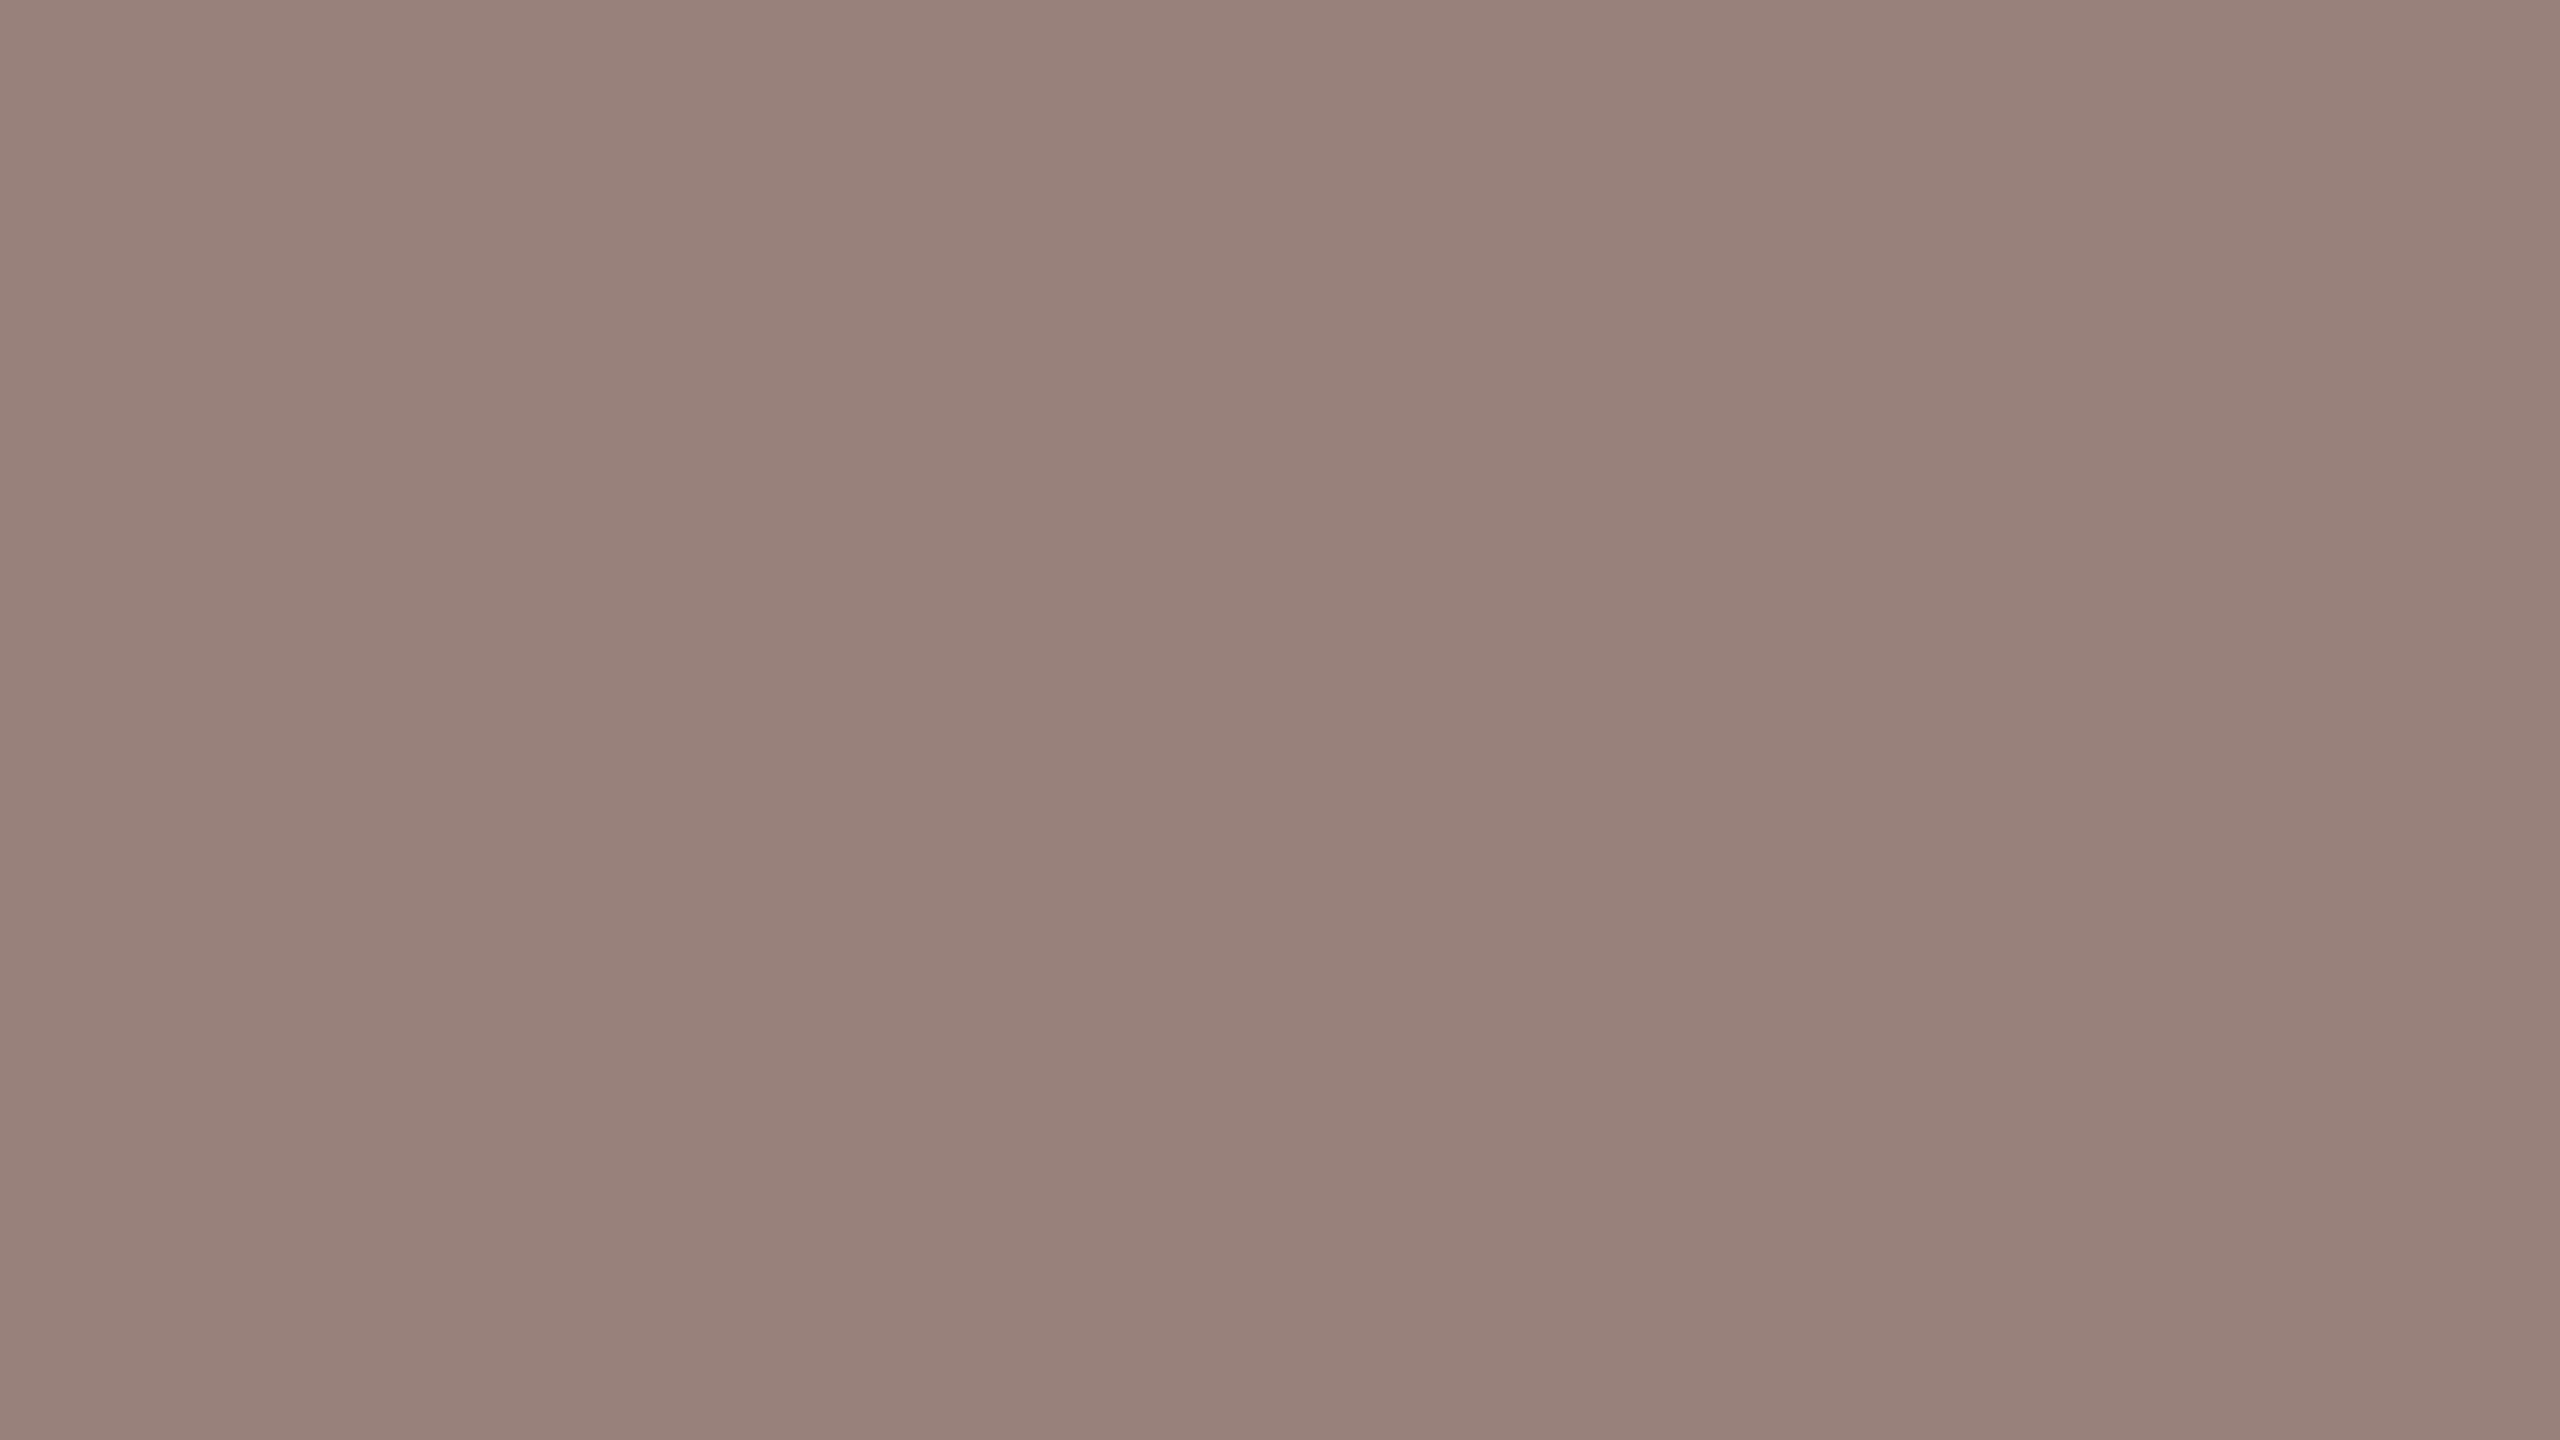 2560x1440 Cinereous Solid Color Background